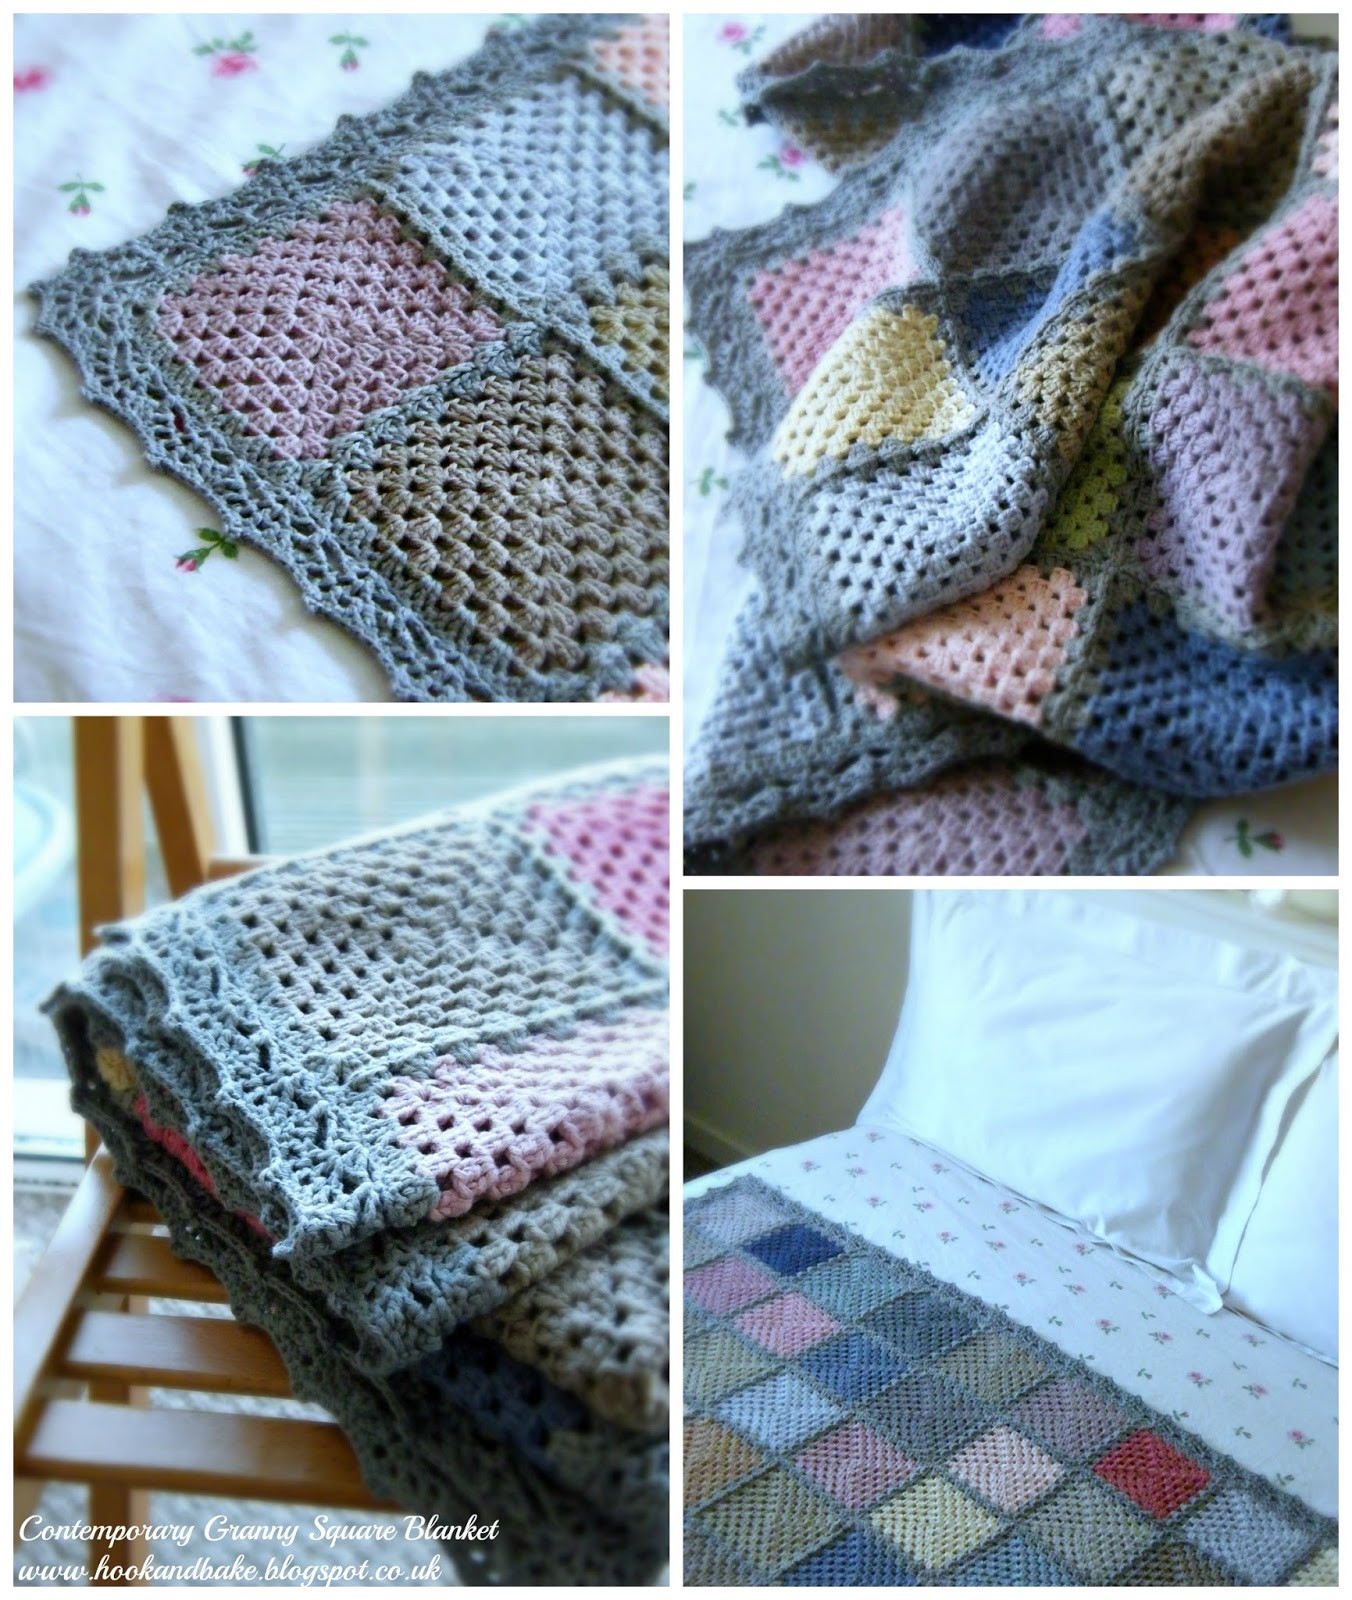 Crochet Granny Blanket Inspirational Annie S Place Contemporary Crochet Granny Square Blanket Of Amazing 47 Ideas Crochet Granny Blanket